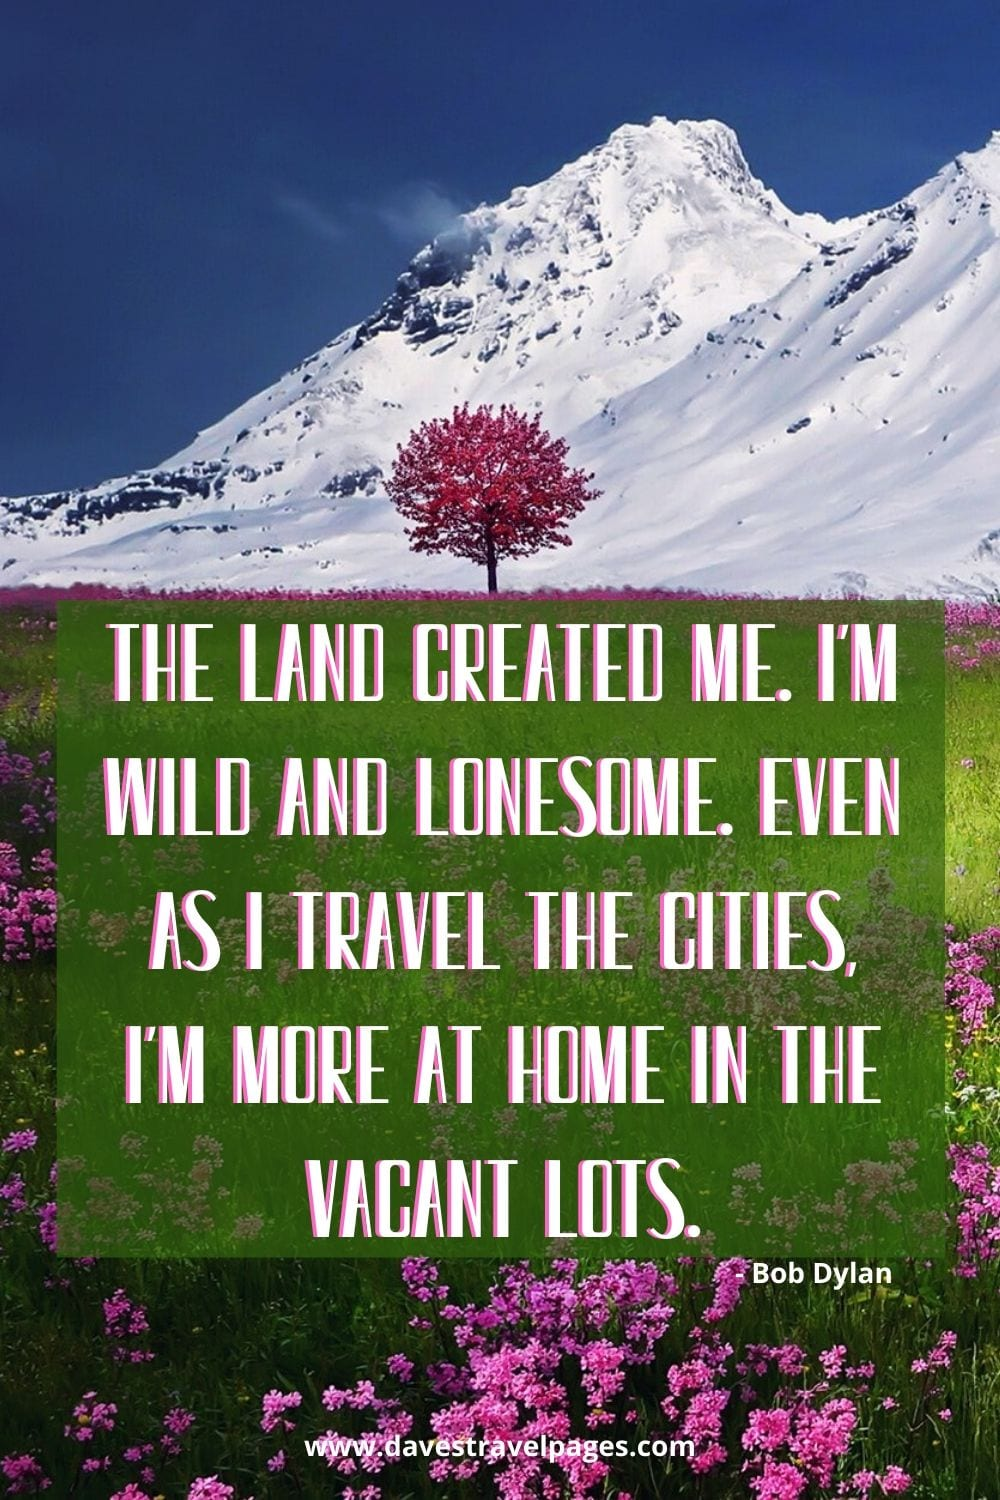 The land created me. I'm wild and lonesome. Even as I travel the cities, I'm more at home in the vacant lots. Bob Dylan